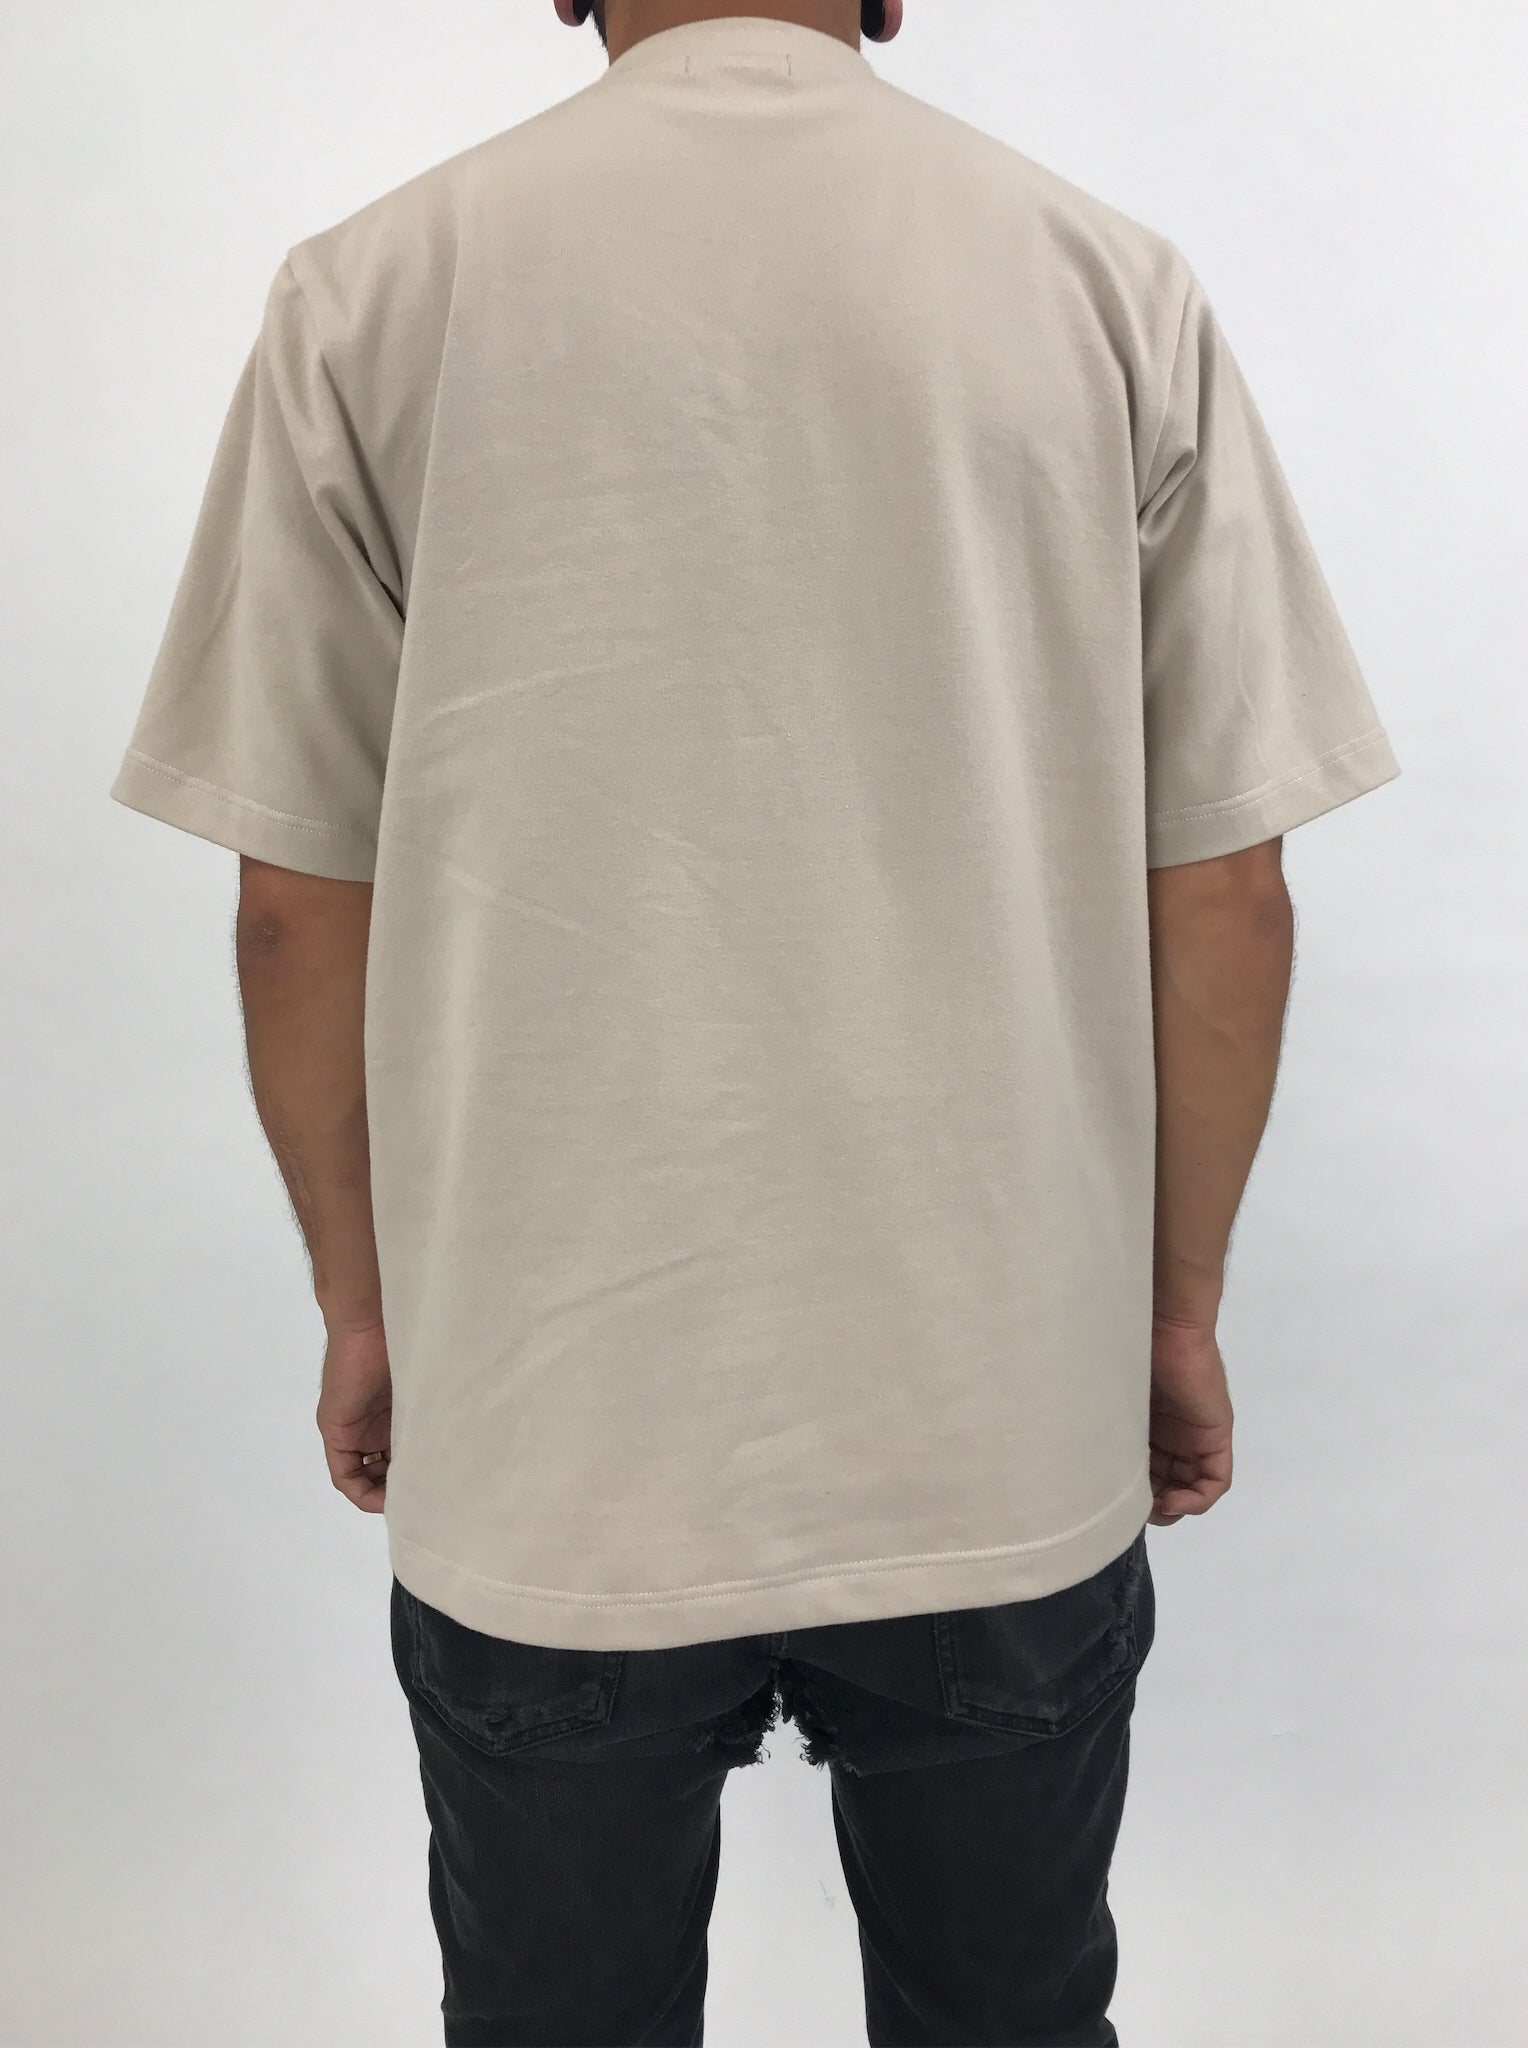 Sand beige tee shirt made with organic cotton portland oregon